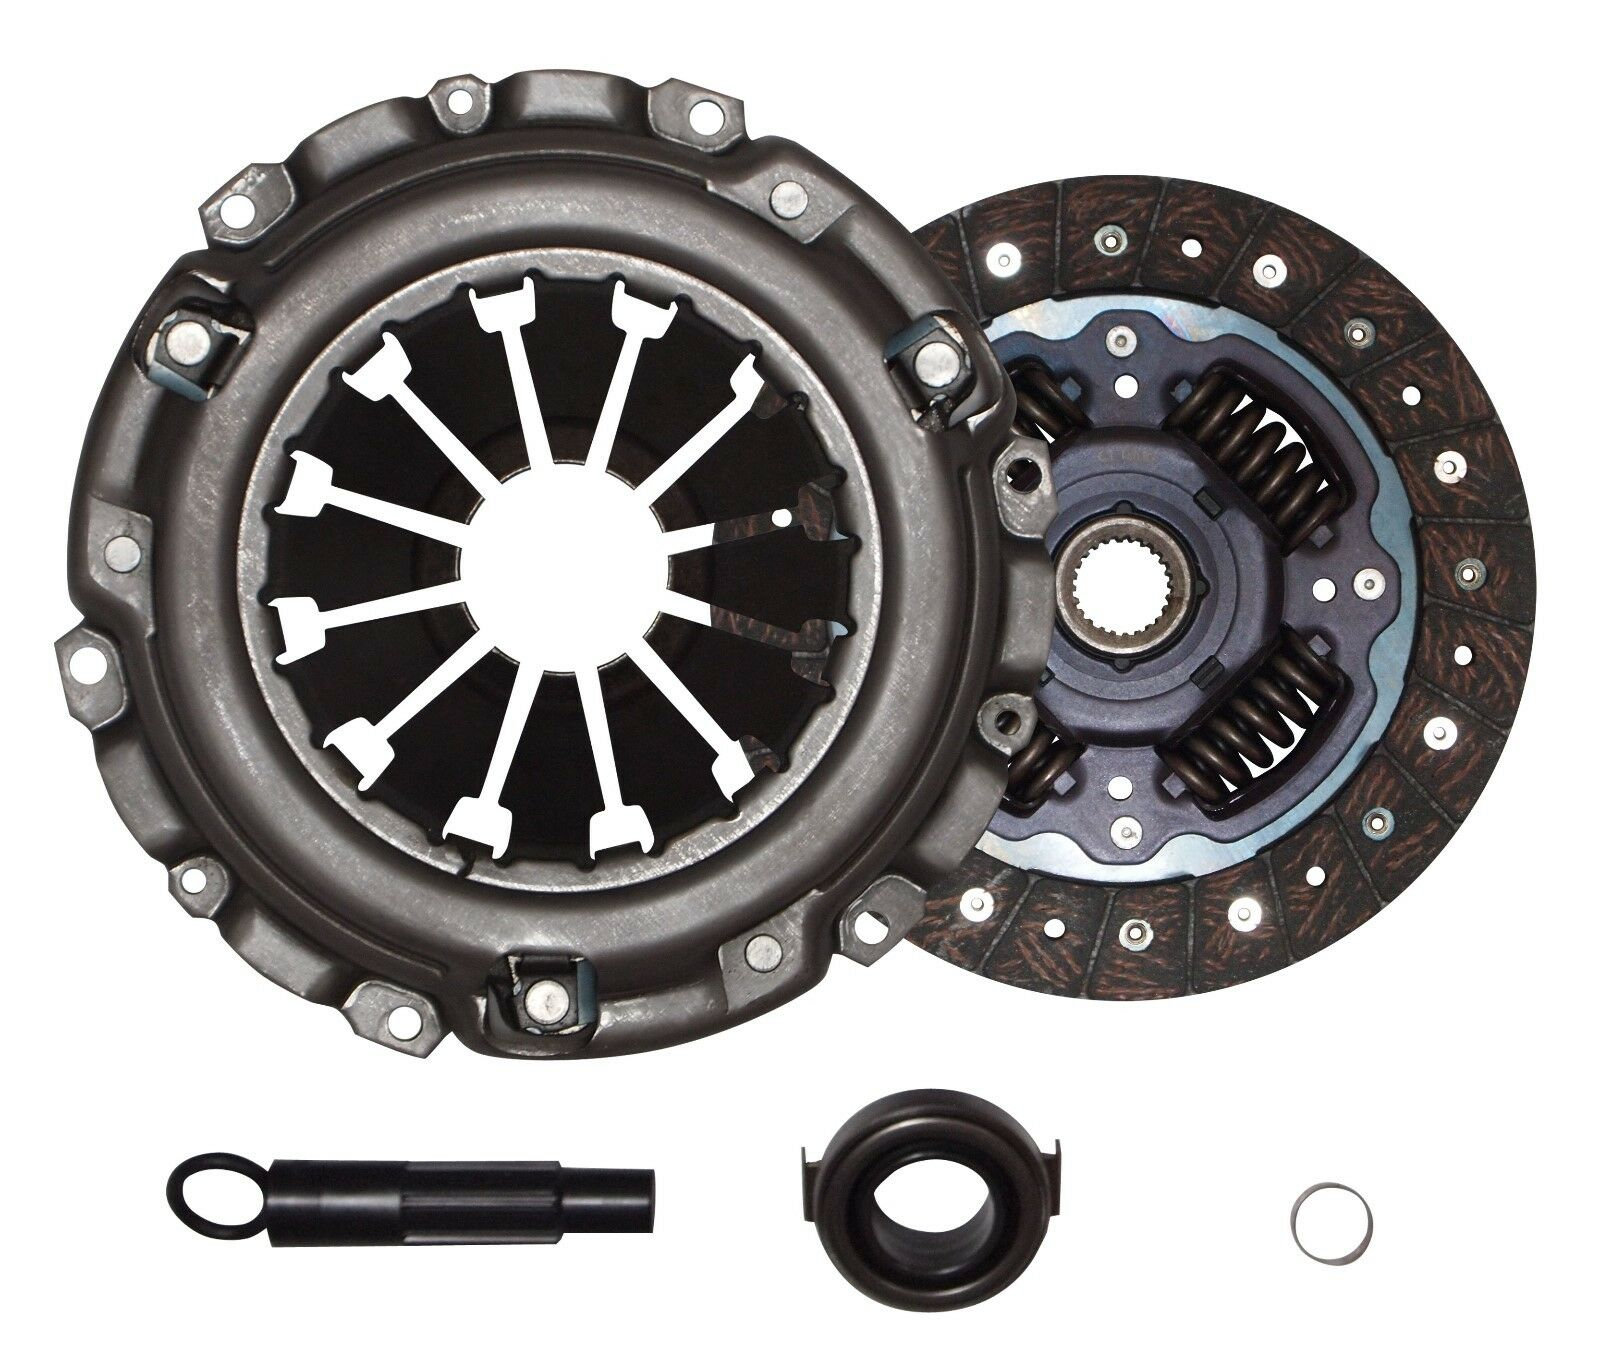 QSC Stage 1 Clutch Kit RSX Type-S Civic Si K20 2.0L IVTEC